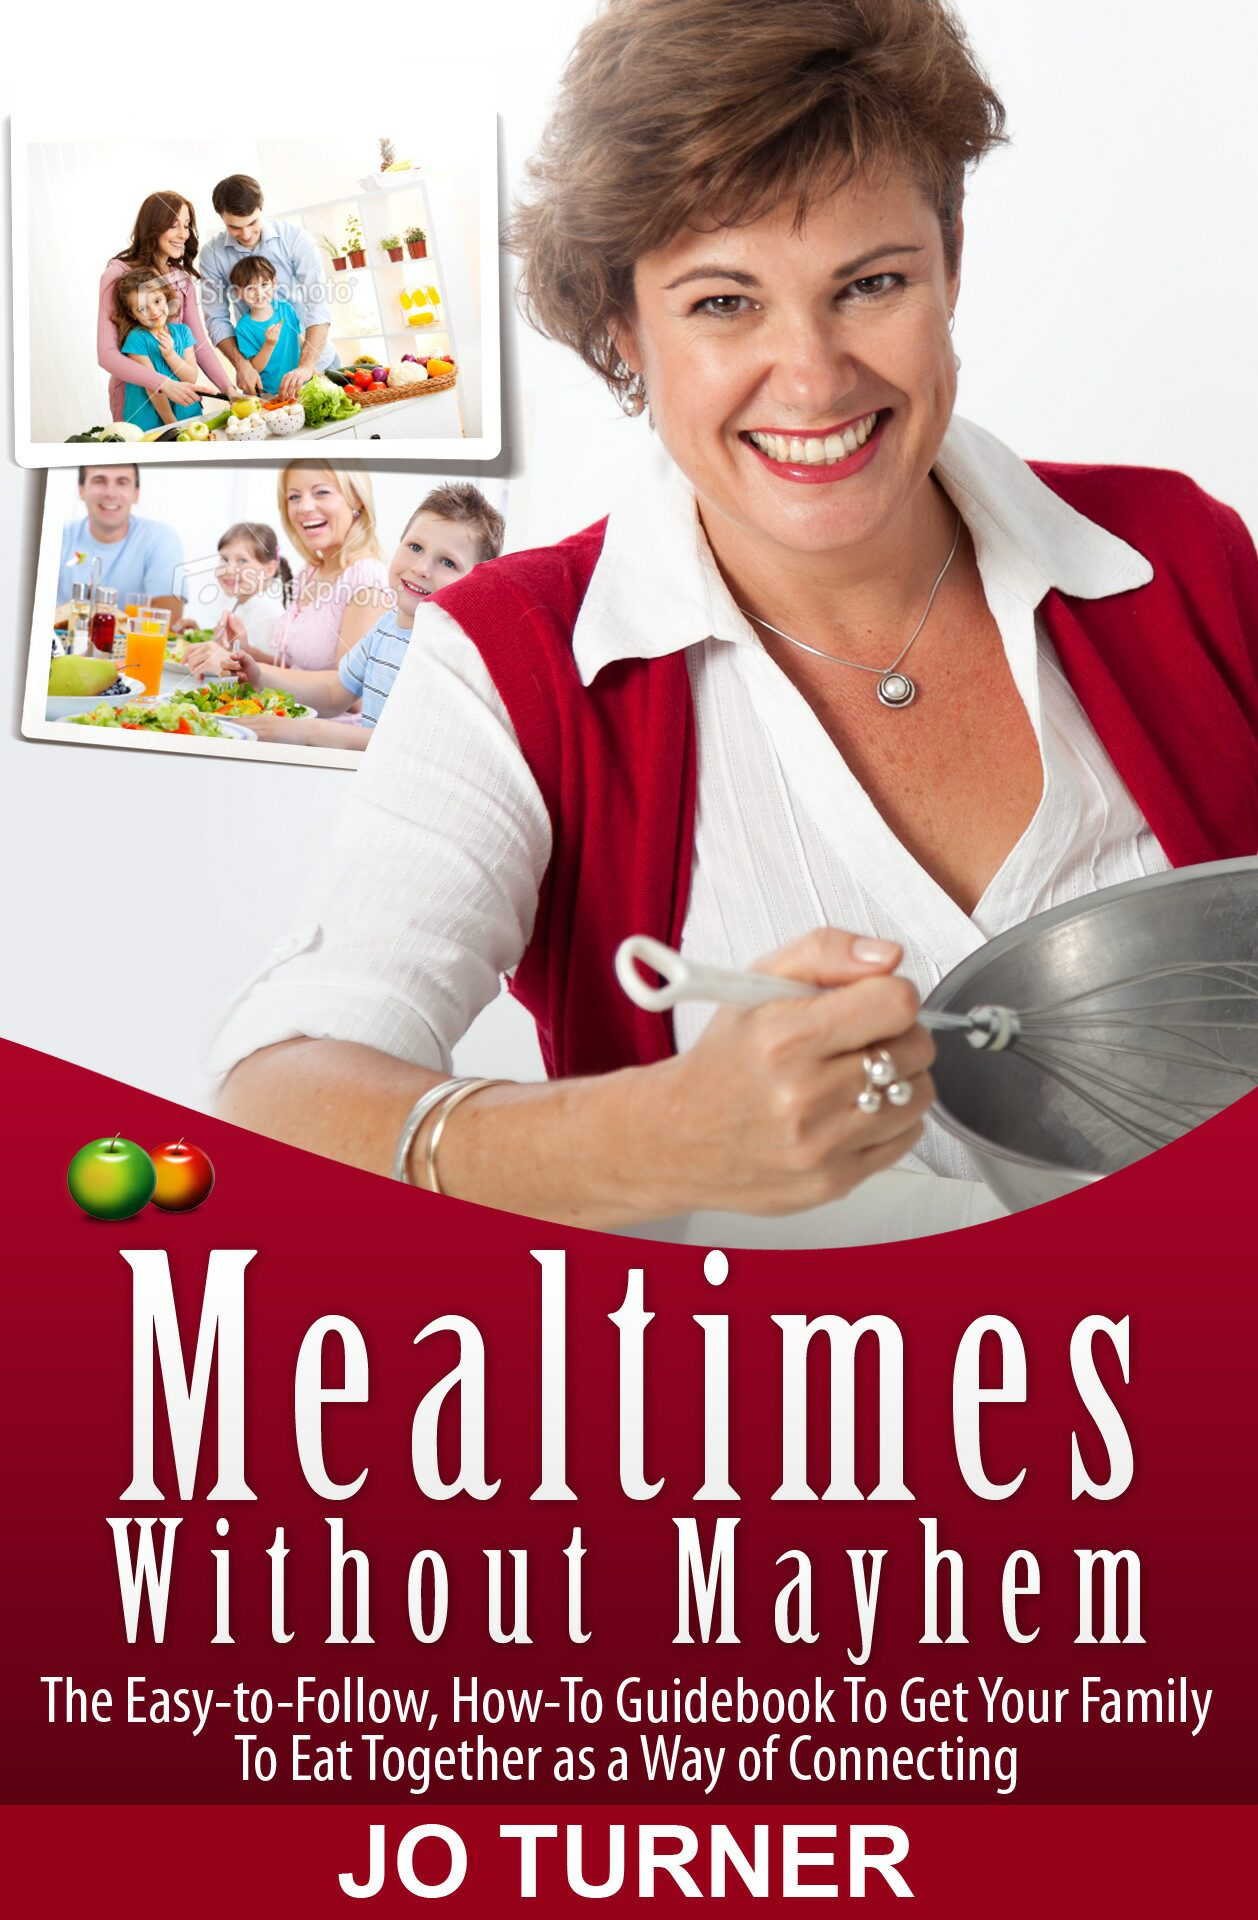 Mealtimes Without Mayhem / Jo Turner